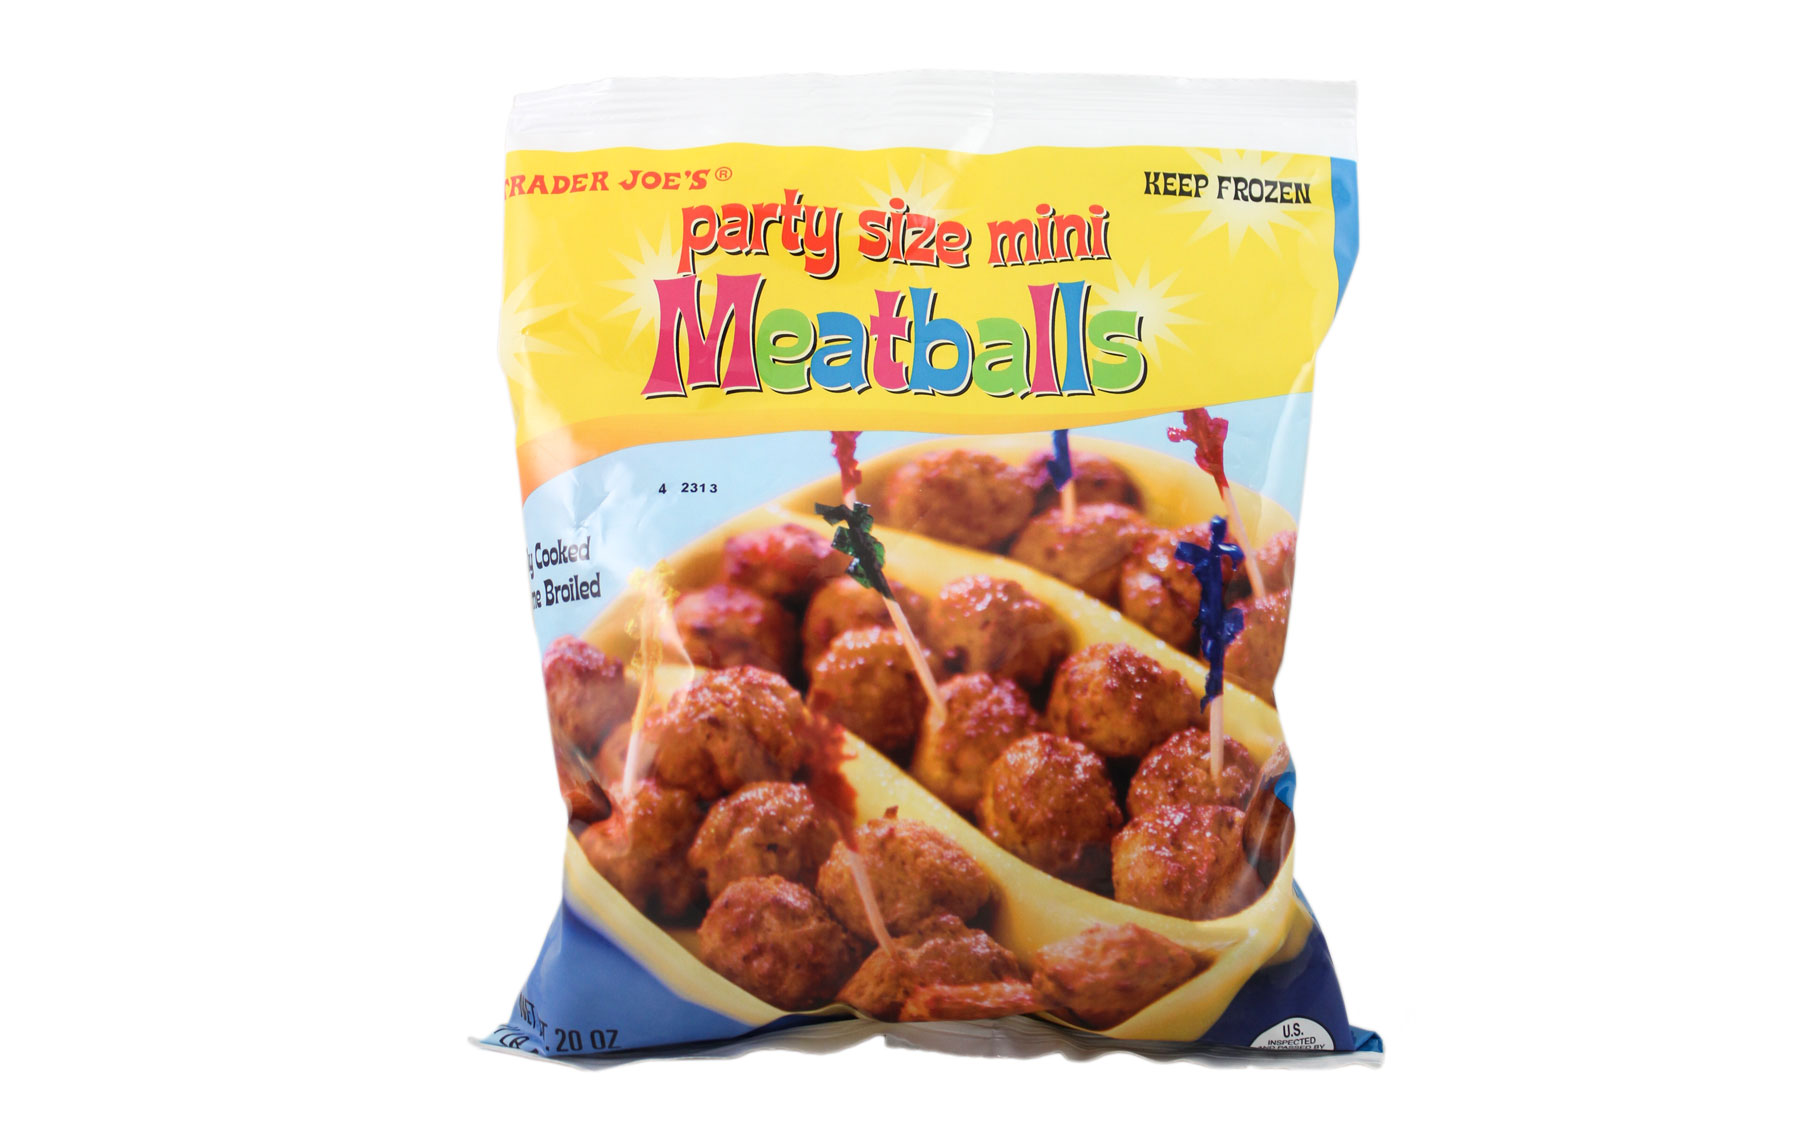 Trader Joe's products/editors' picks - Trader Joe's Party Size Mini Meatballs